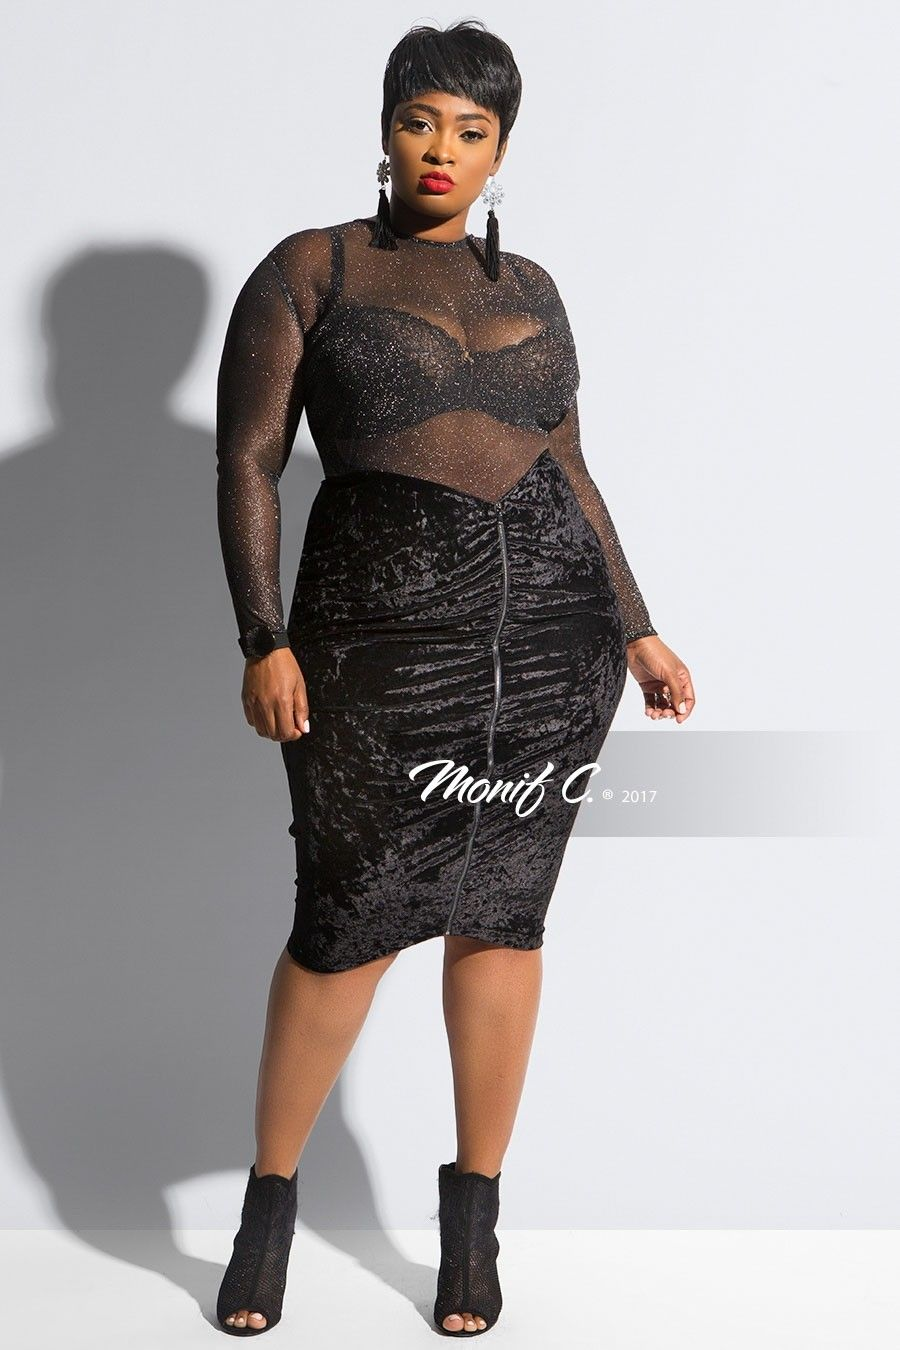 5a6ffee0102 Monif C Plus Size Clothing